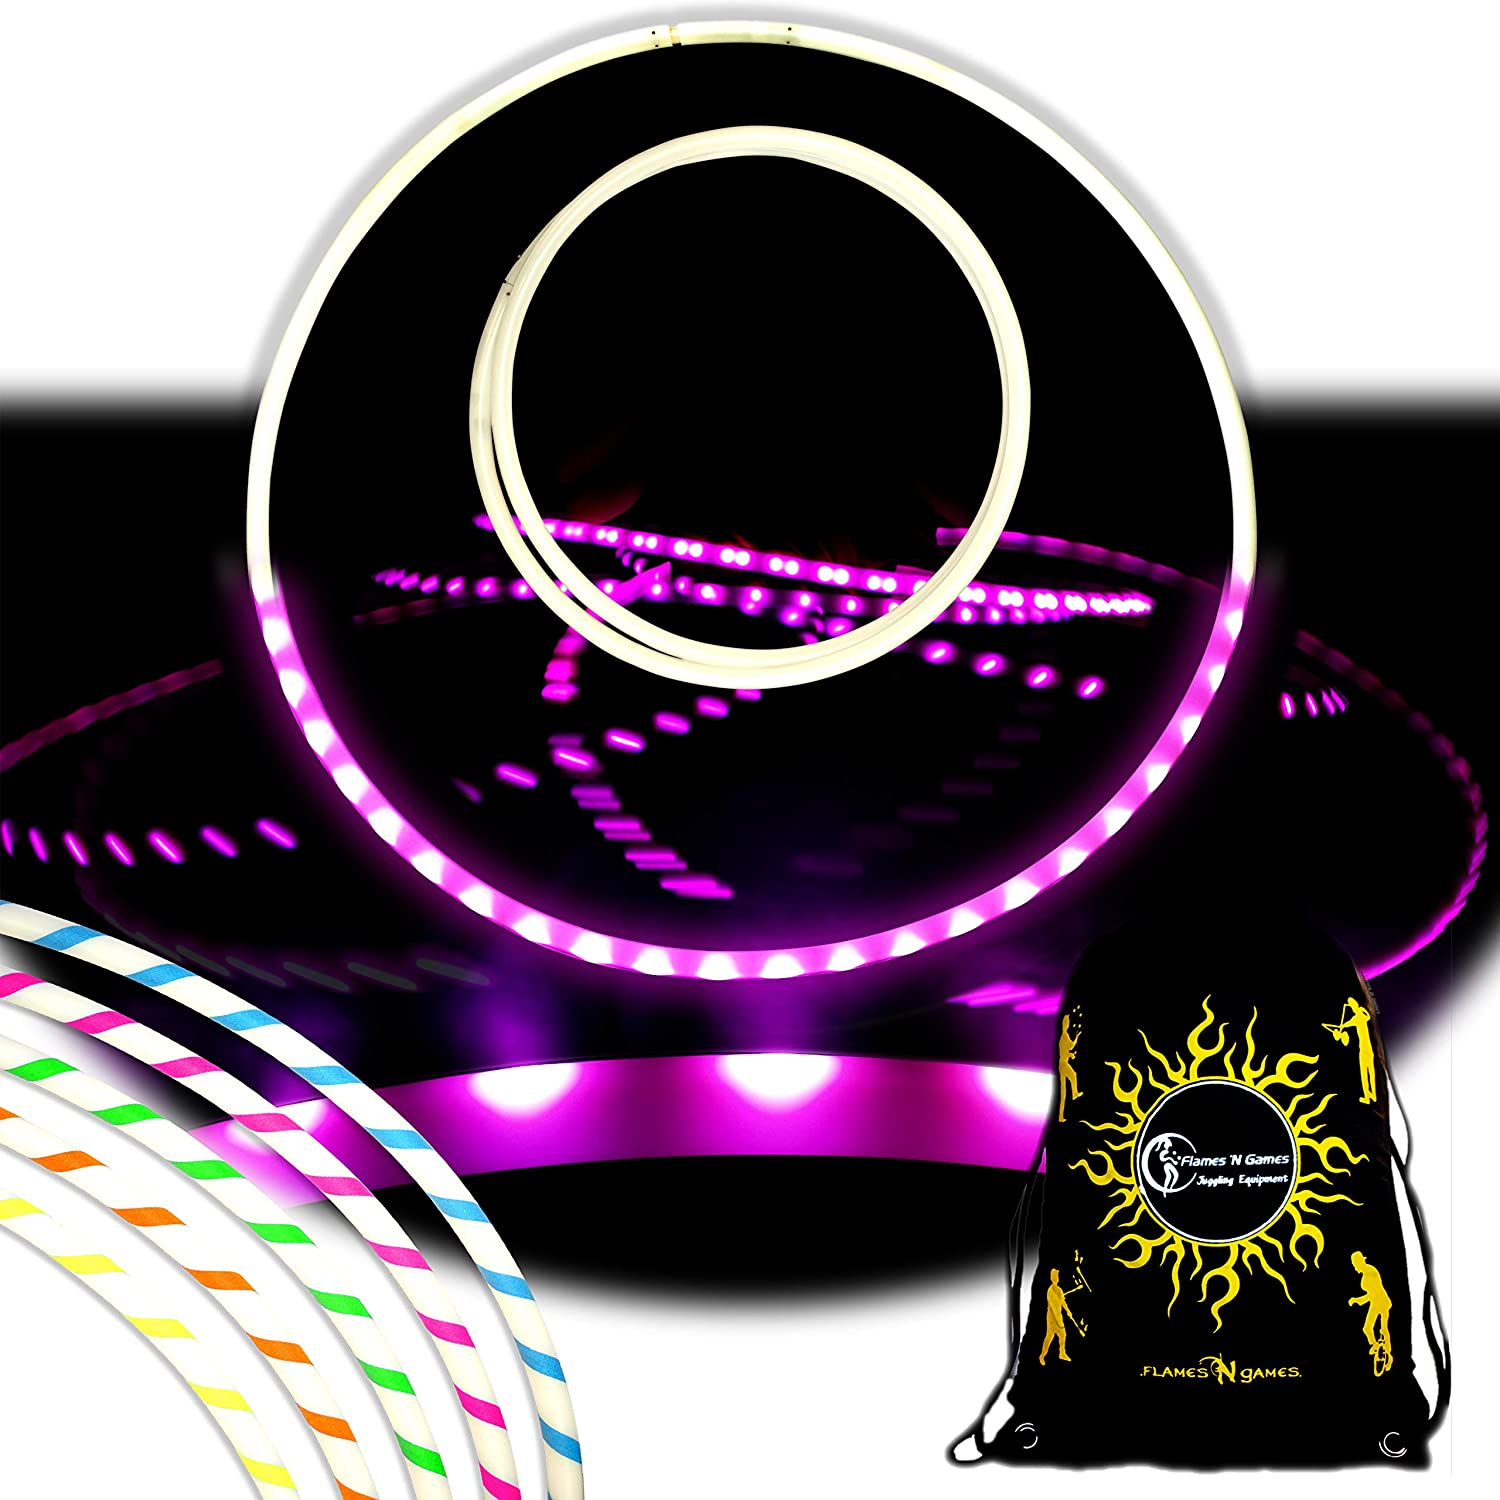 NEBULA Glow Rechargeable LED Hula Hoop - Single Coloured LED Hoop With Battery & Charger Included + Bag! Bright Colours For Hoop Dance And Excercise - 90cm! Flames 'N Games